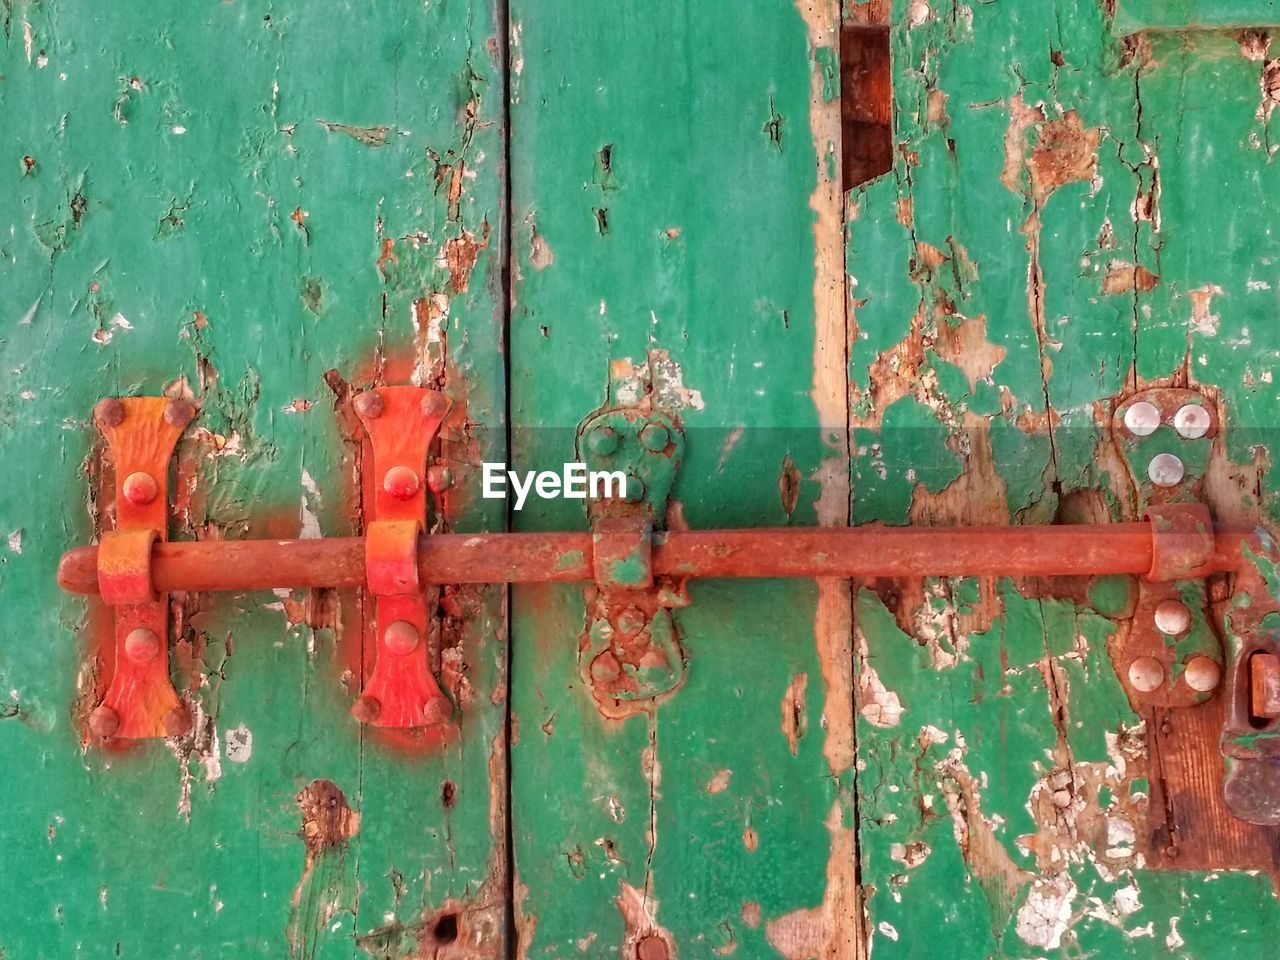 Close-Up Of Rusty Latch On Old Wooden Door